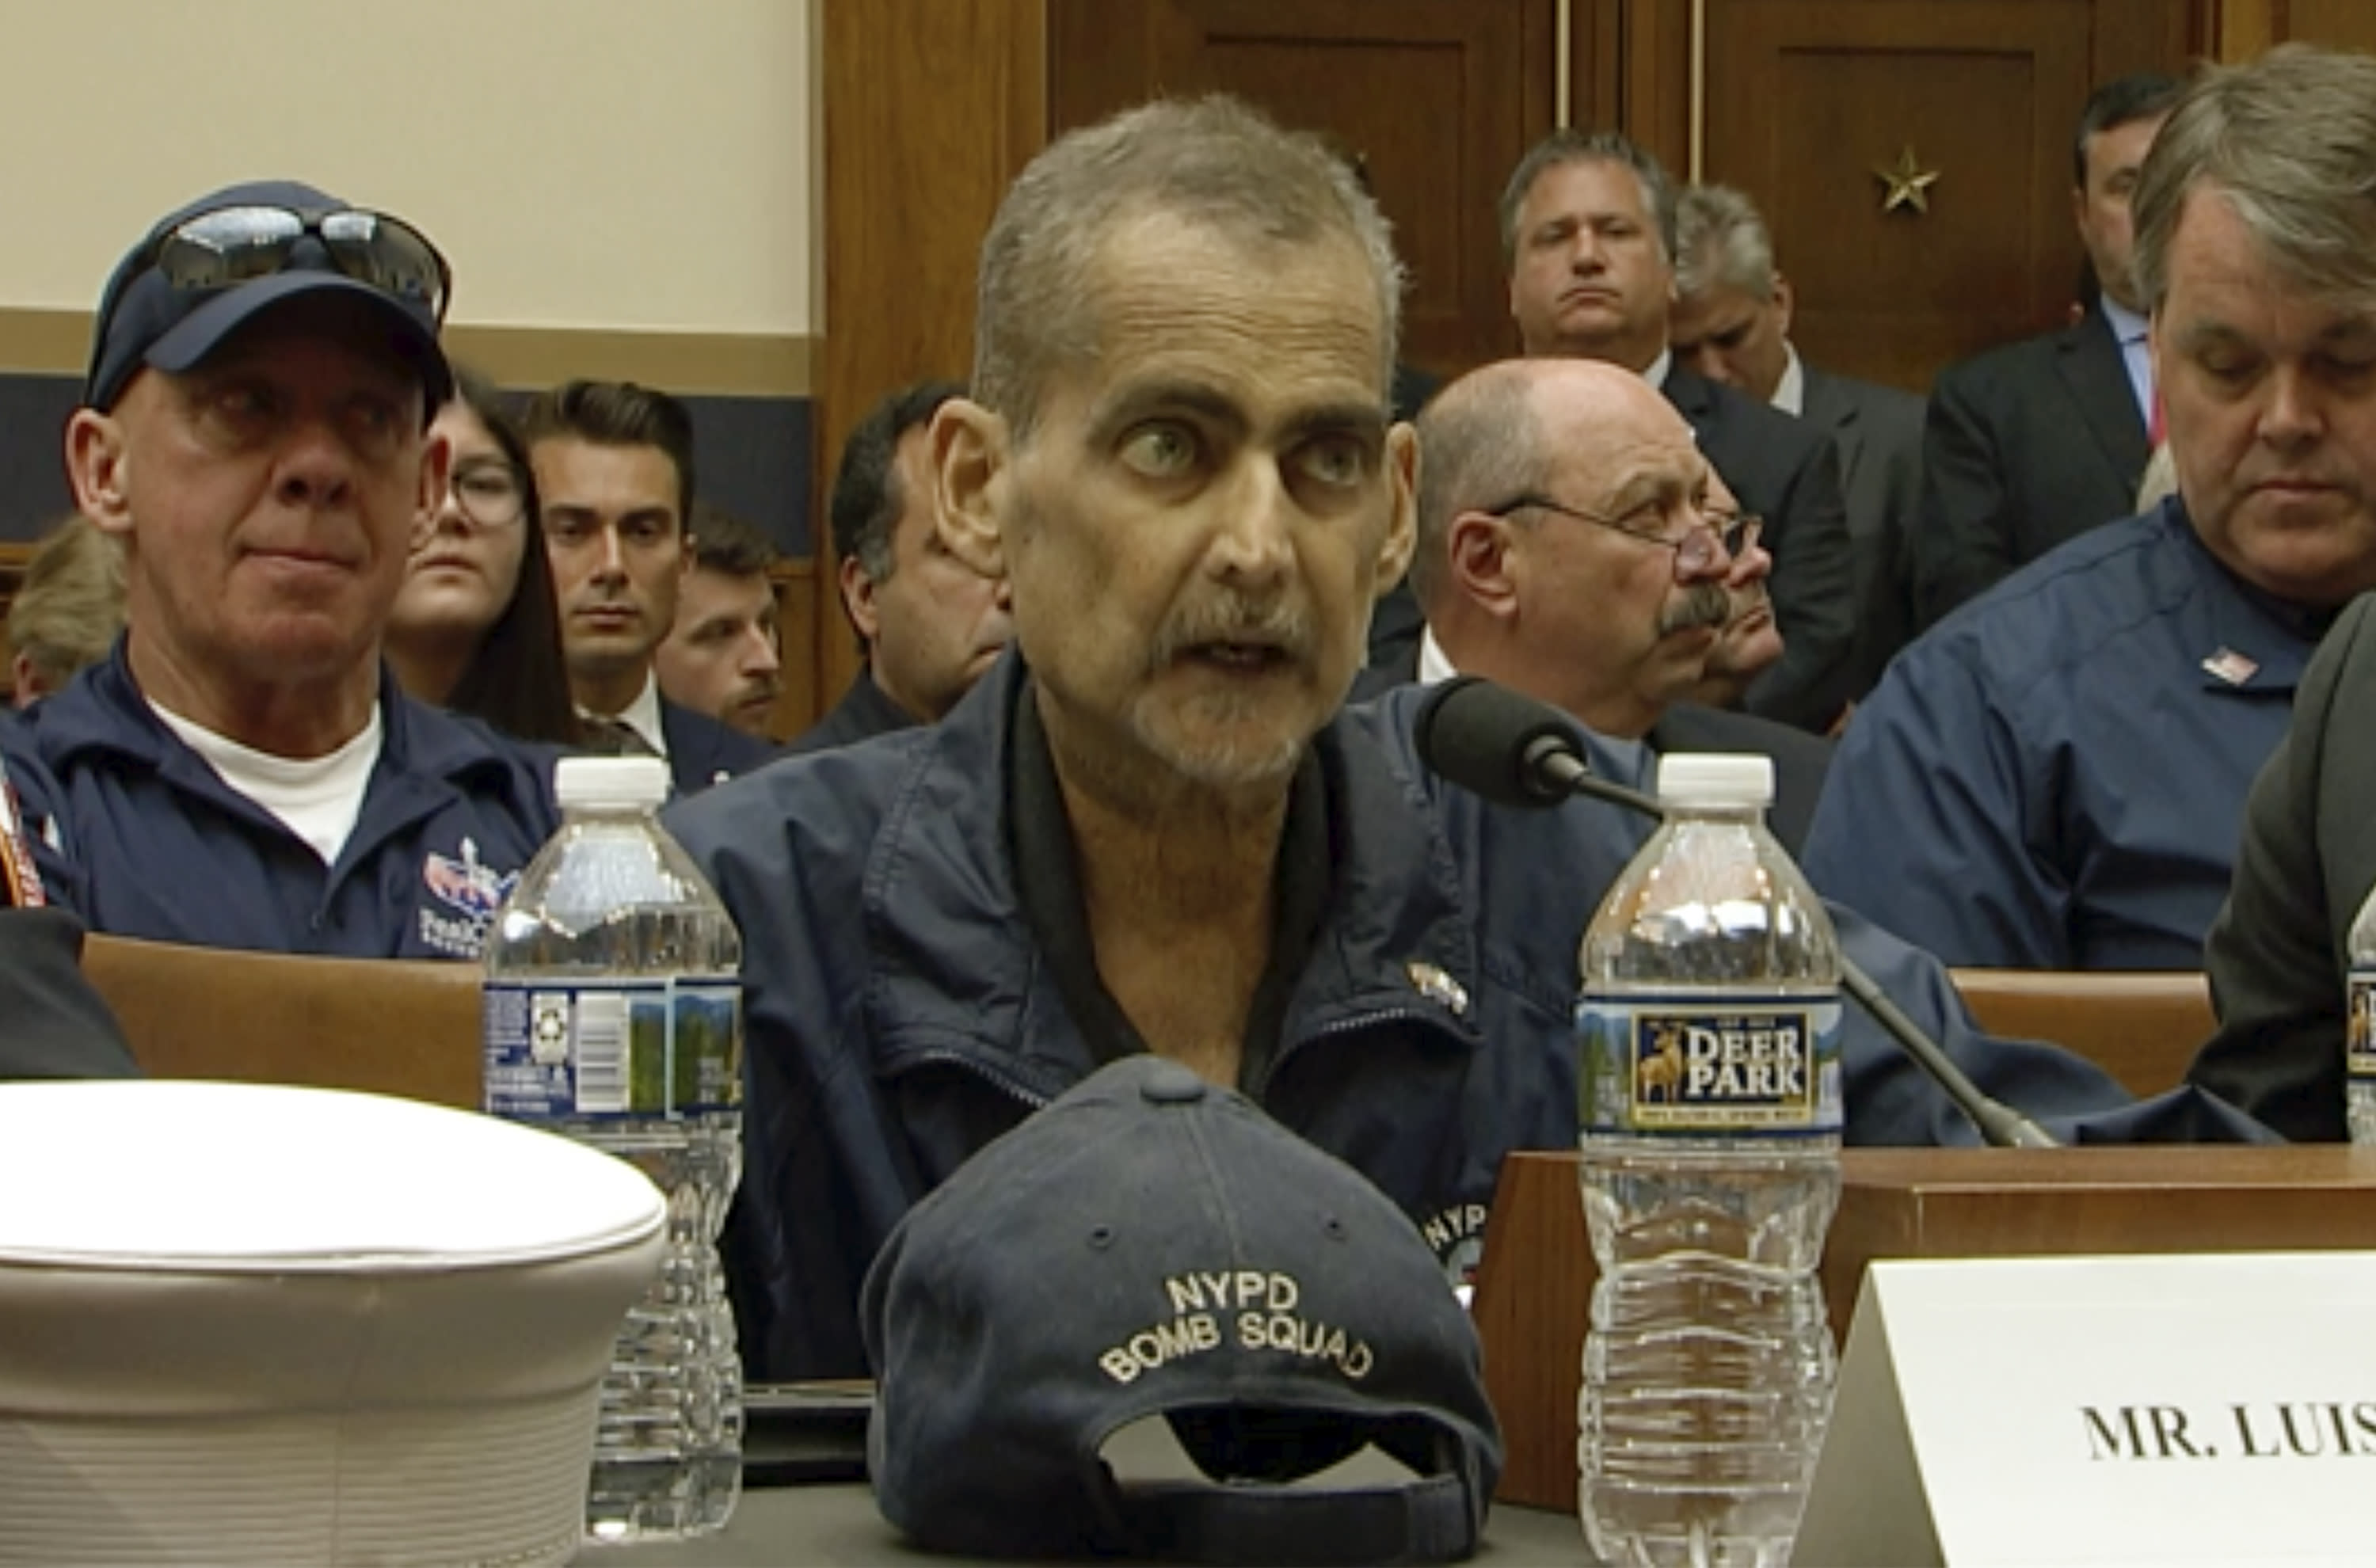 This still image taken from video shows Retired NYPD Detective and 9/11 Responder Luis Alvarez speaks during a hearing by the House Judiciary Committee as it considers permanent authorization of the Victim Compensation Fund on Capitol Hill in Washington